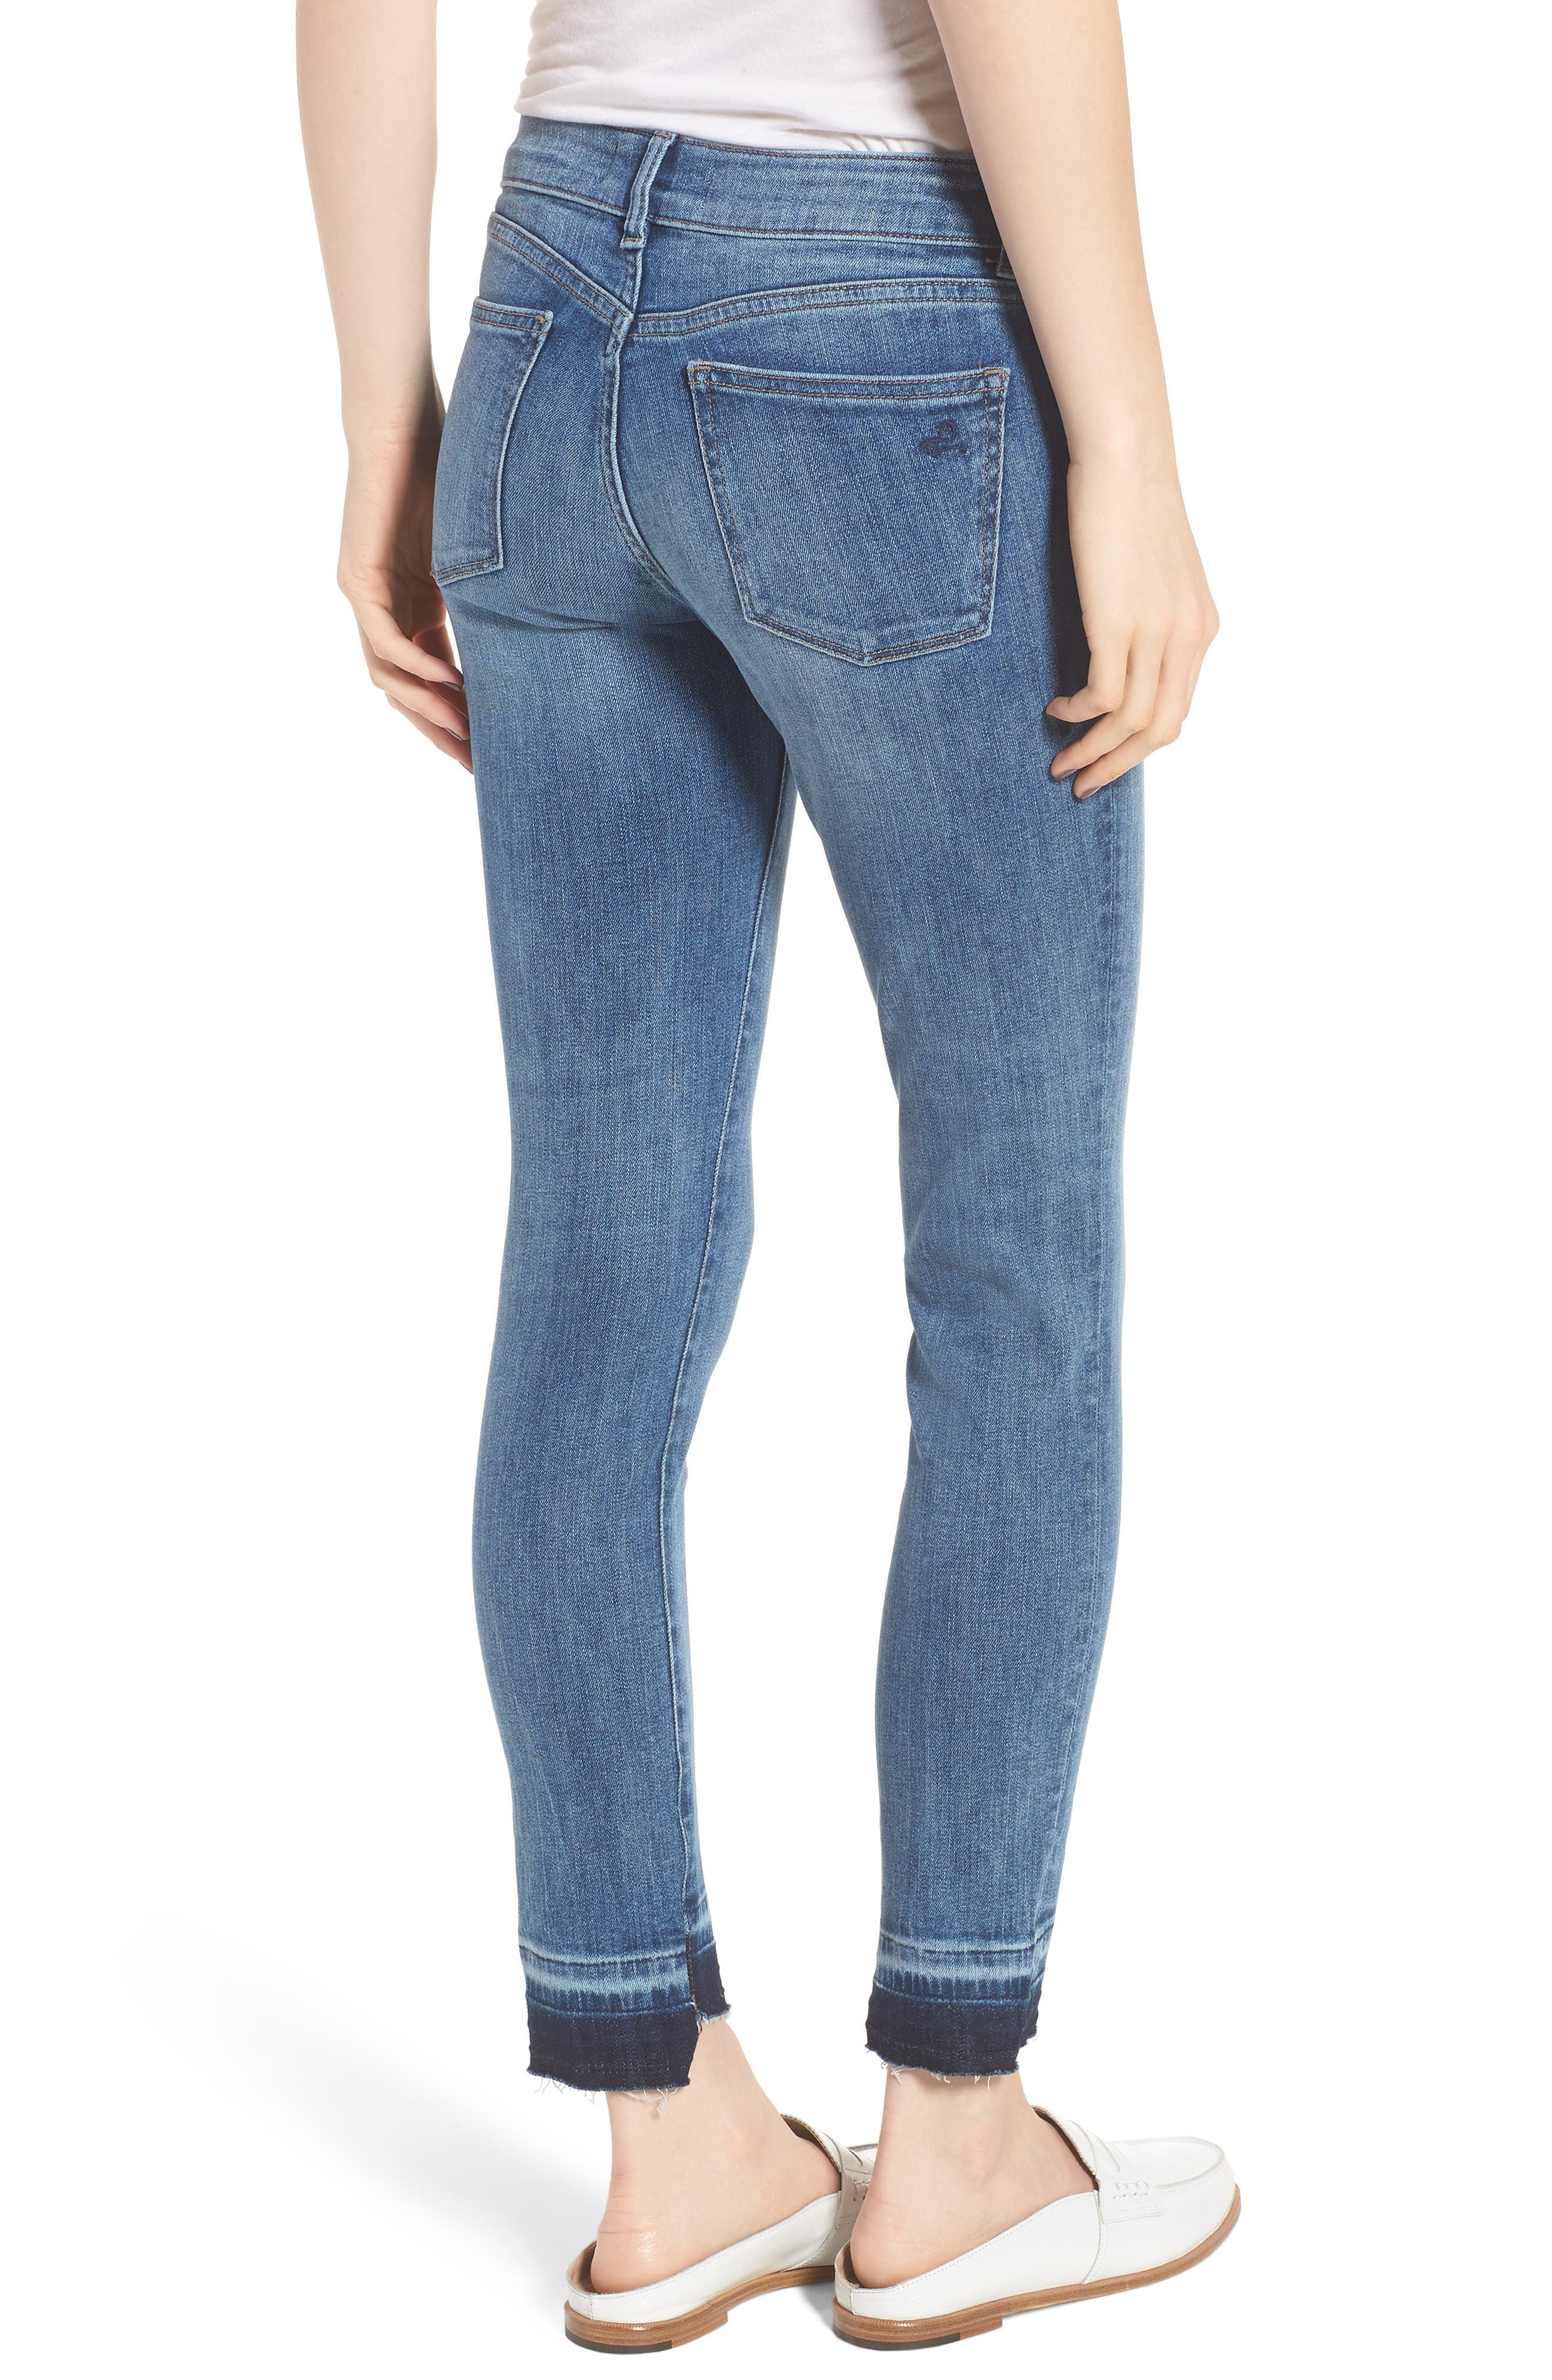 Margaux Instasculpt Ankle Skinny Jeans,                             Alternate thumbnail 2, color,                             Costa Mesa